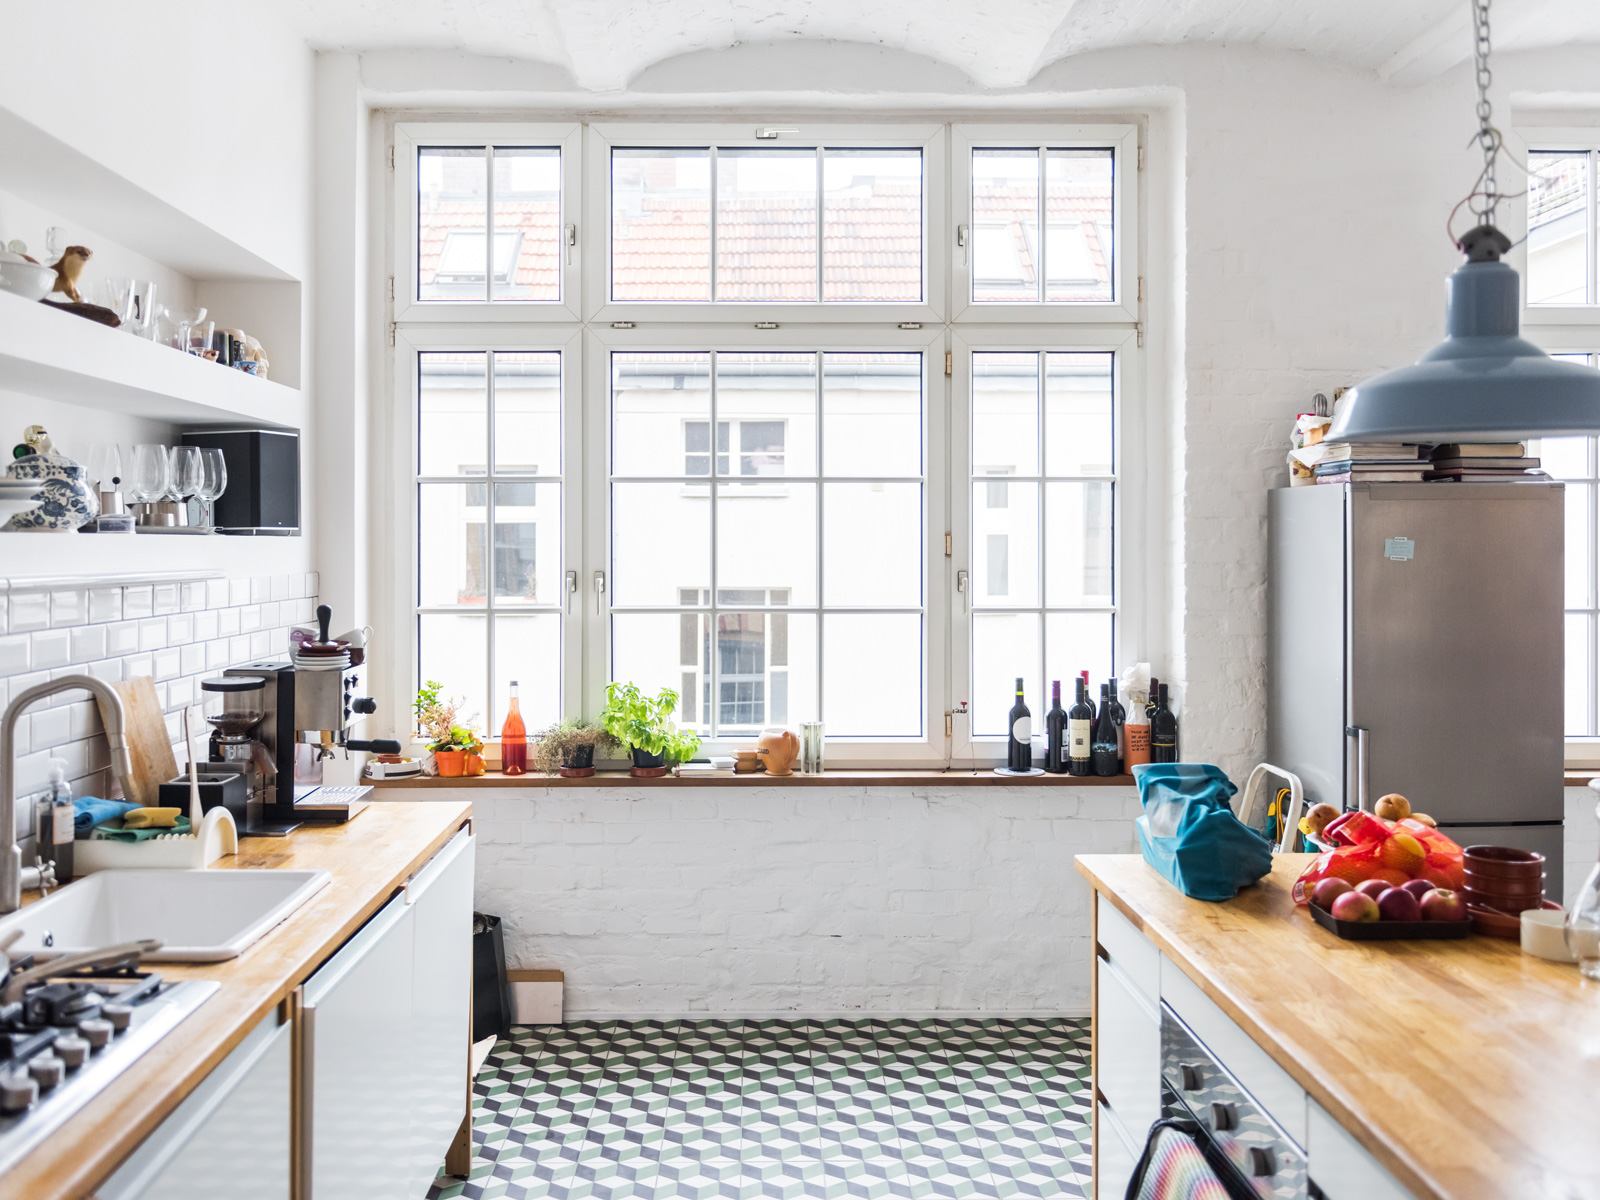 Kitchen Trends to Make Your Home Sell Fast